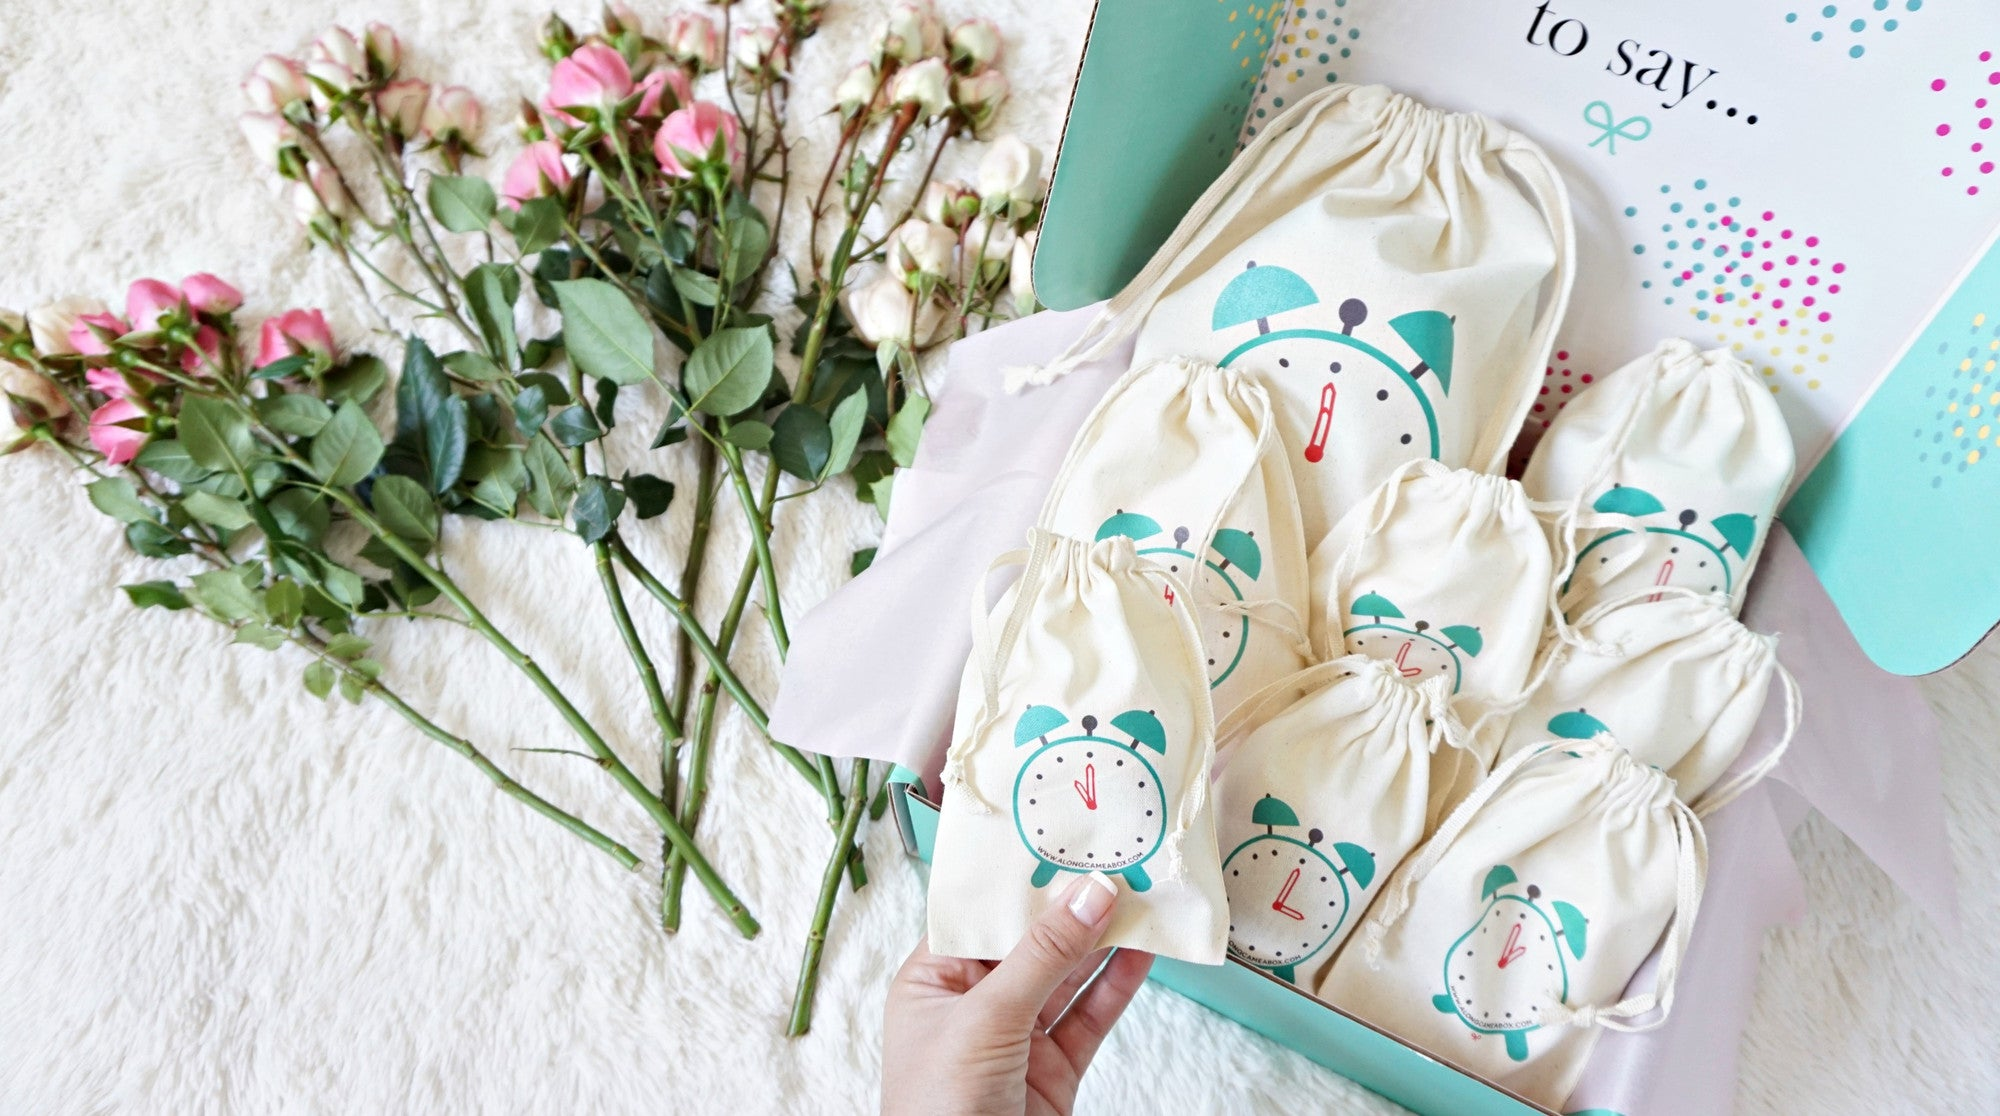 A gift every hour of the day